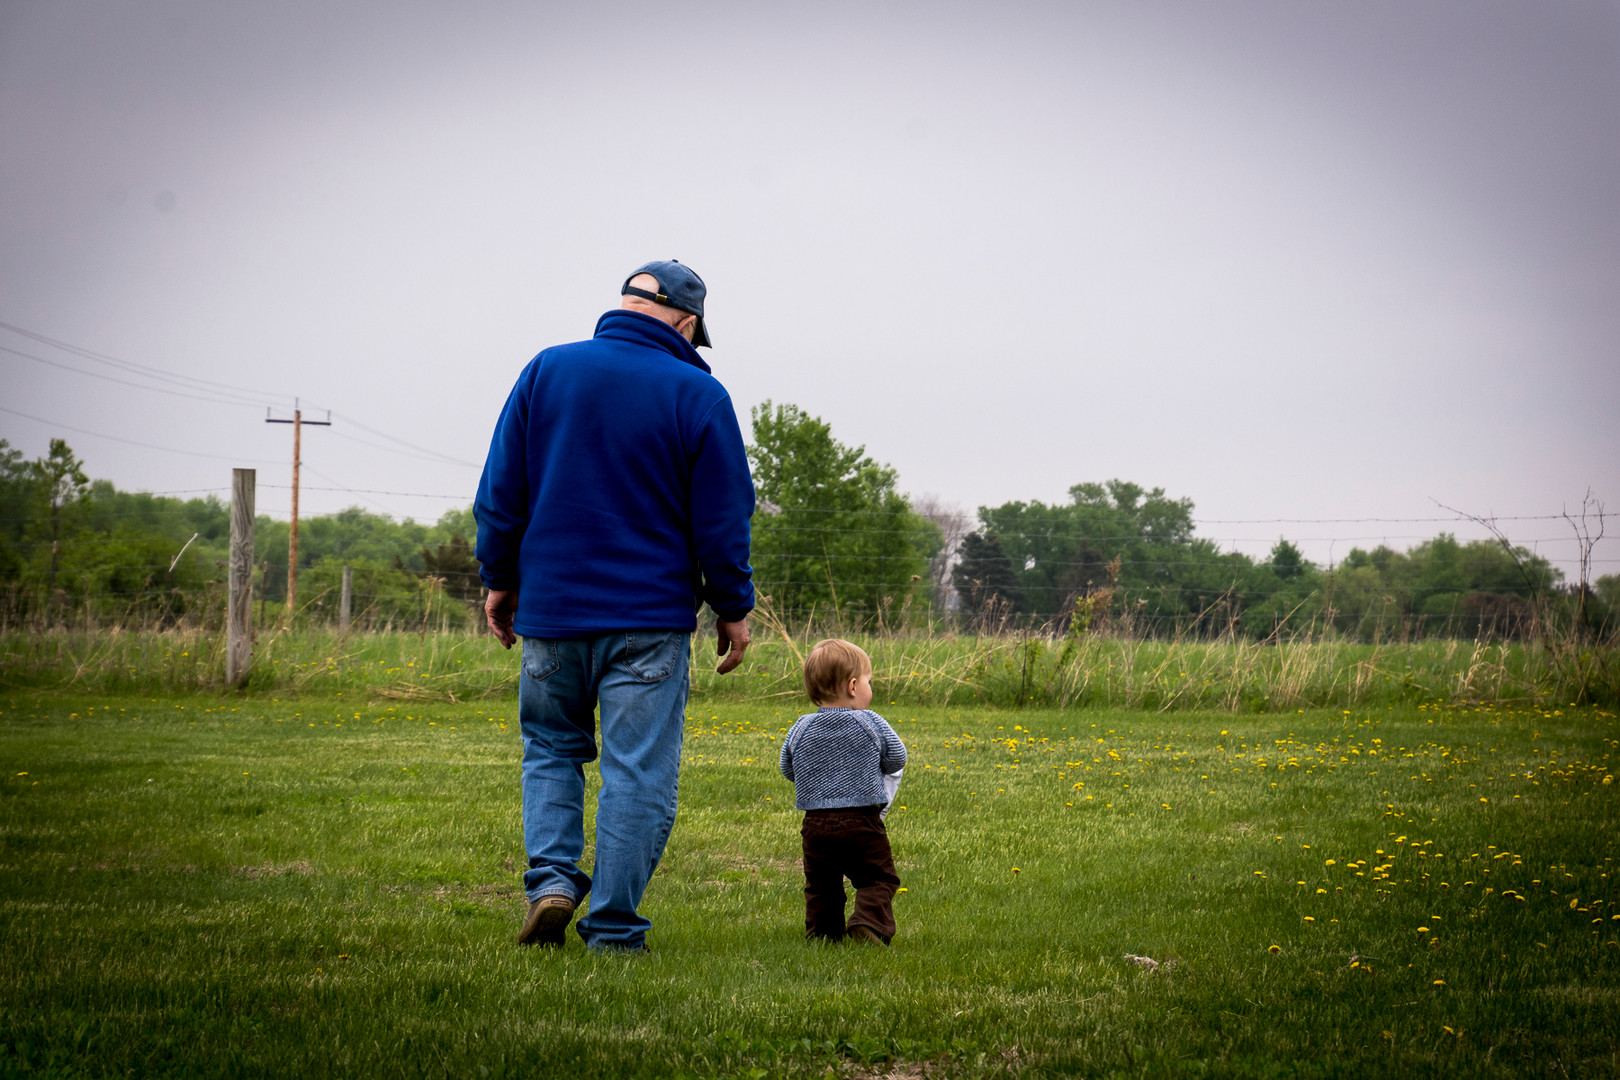 Walk with Grandpa